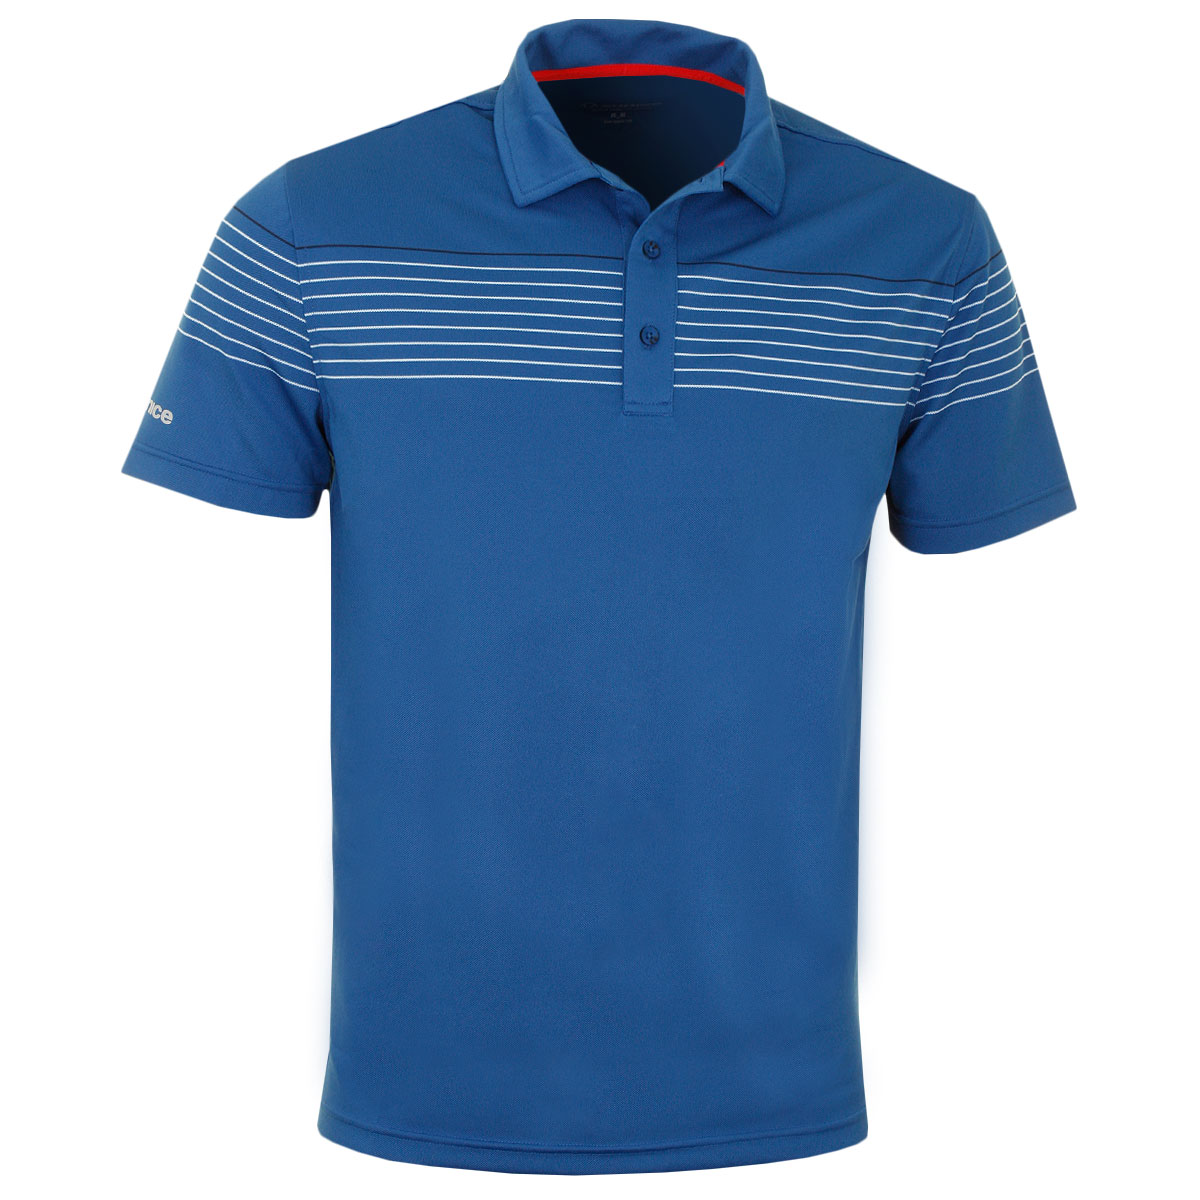 Sunice 2017 Mens Rennes Ss Moisture Wicking Stretch Golf